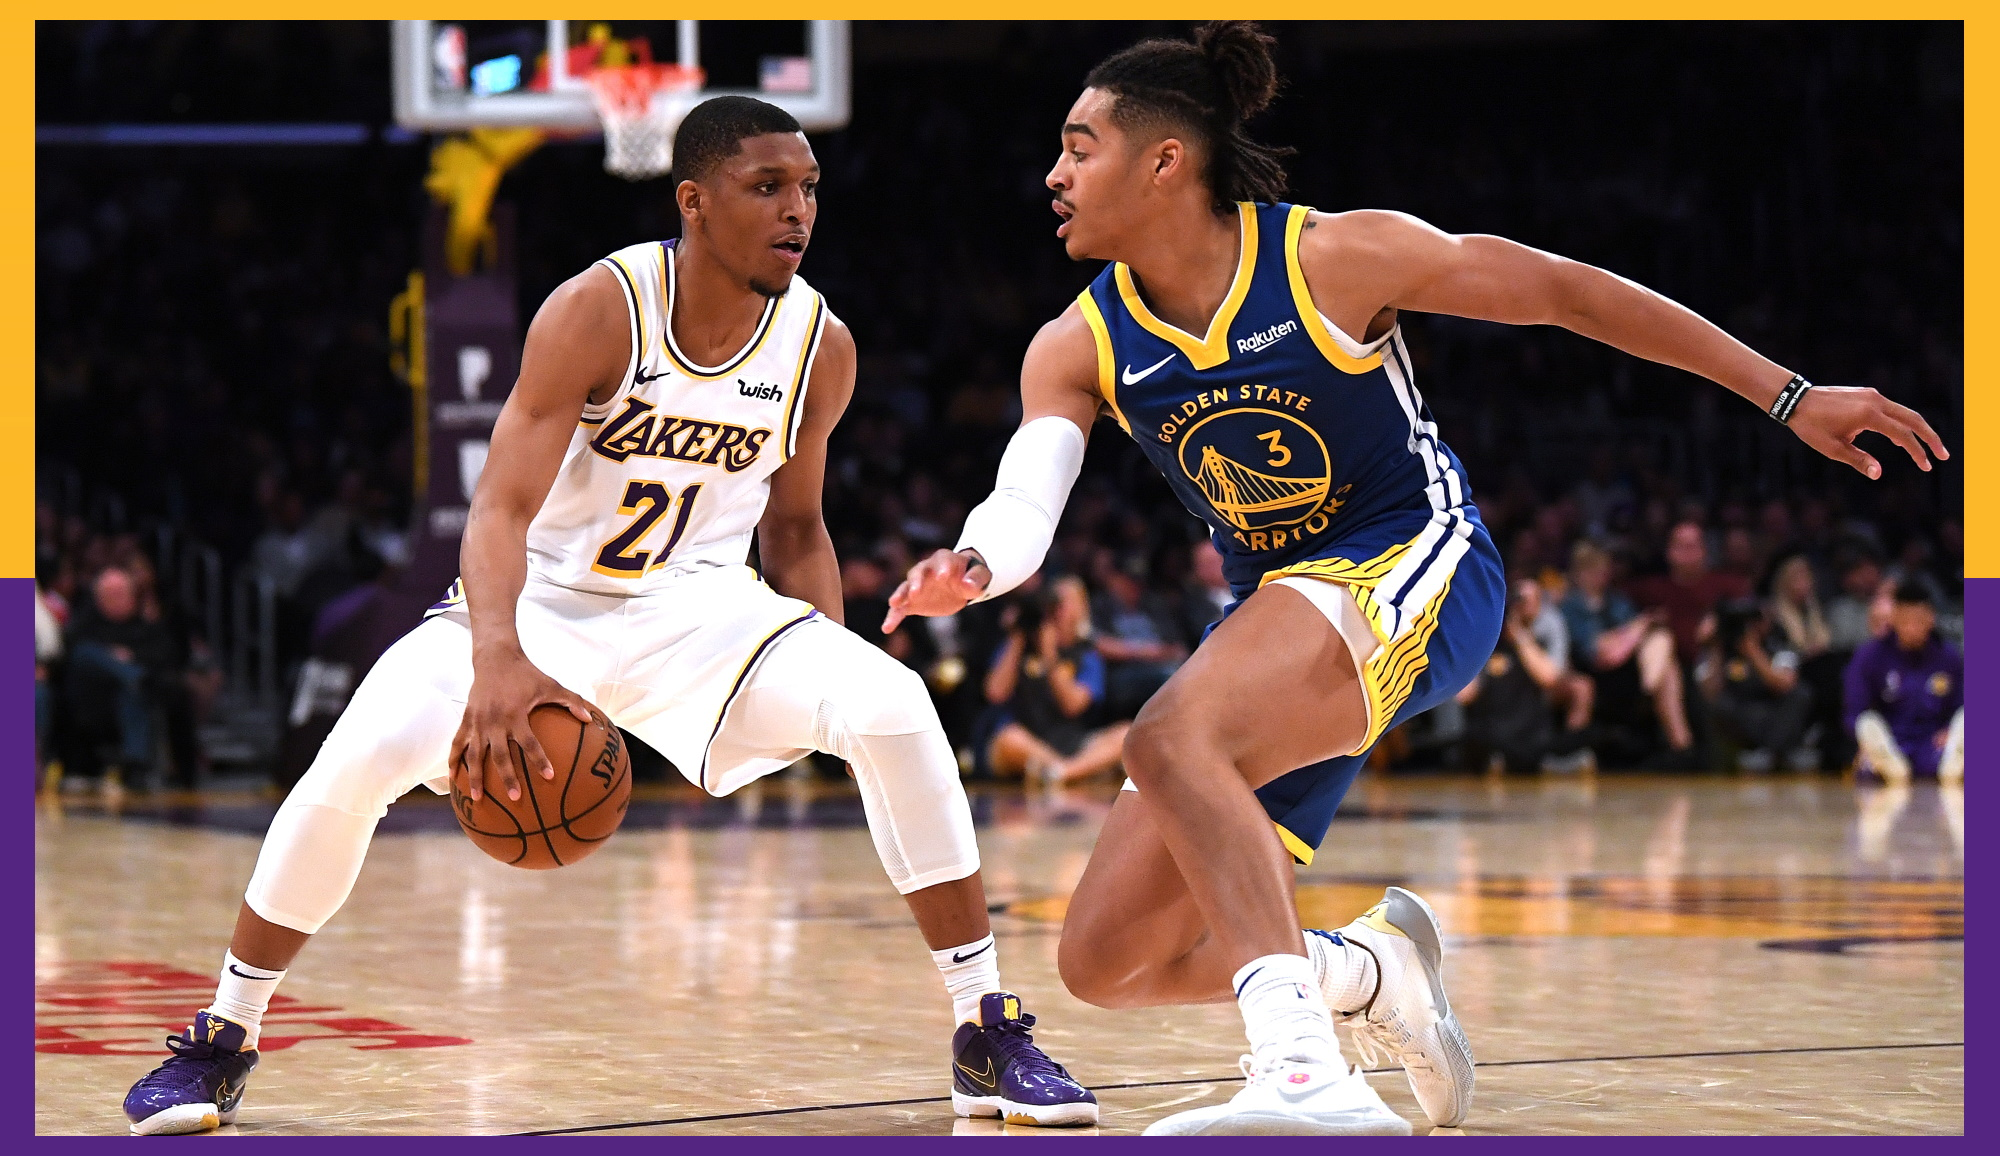 Zach Norvell Jr. and Jordan Poole, Los Angeles Lakers vs Golden State Warriors at Staples Center